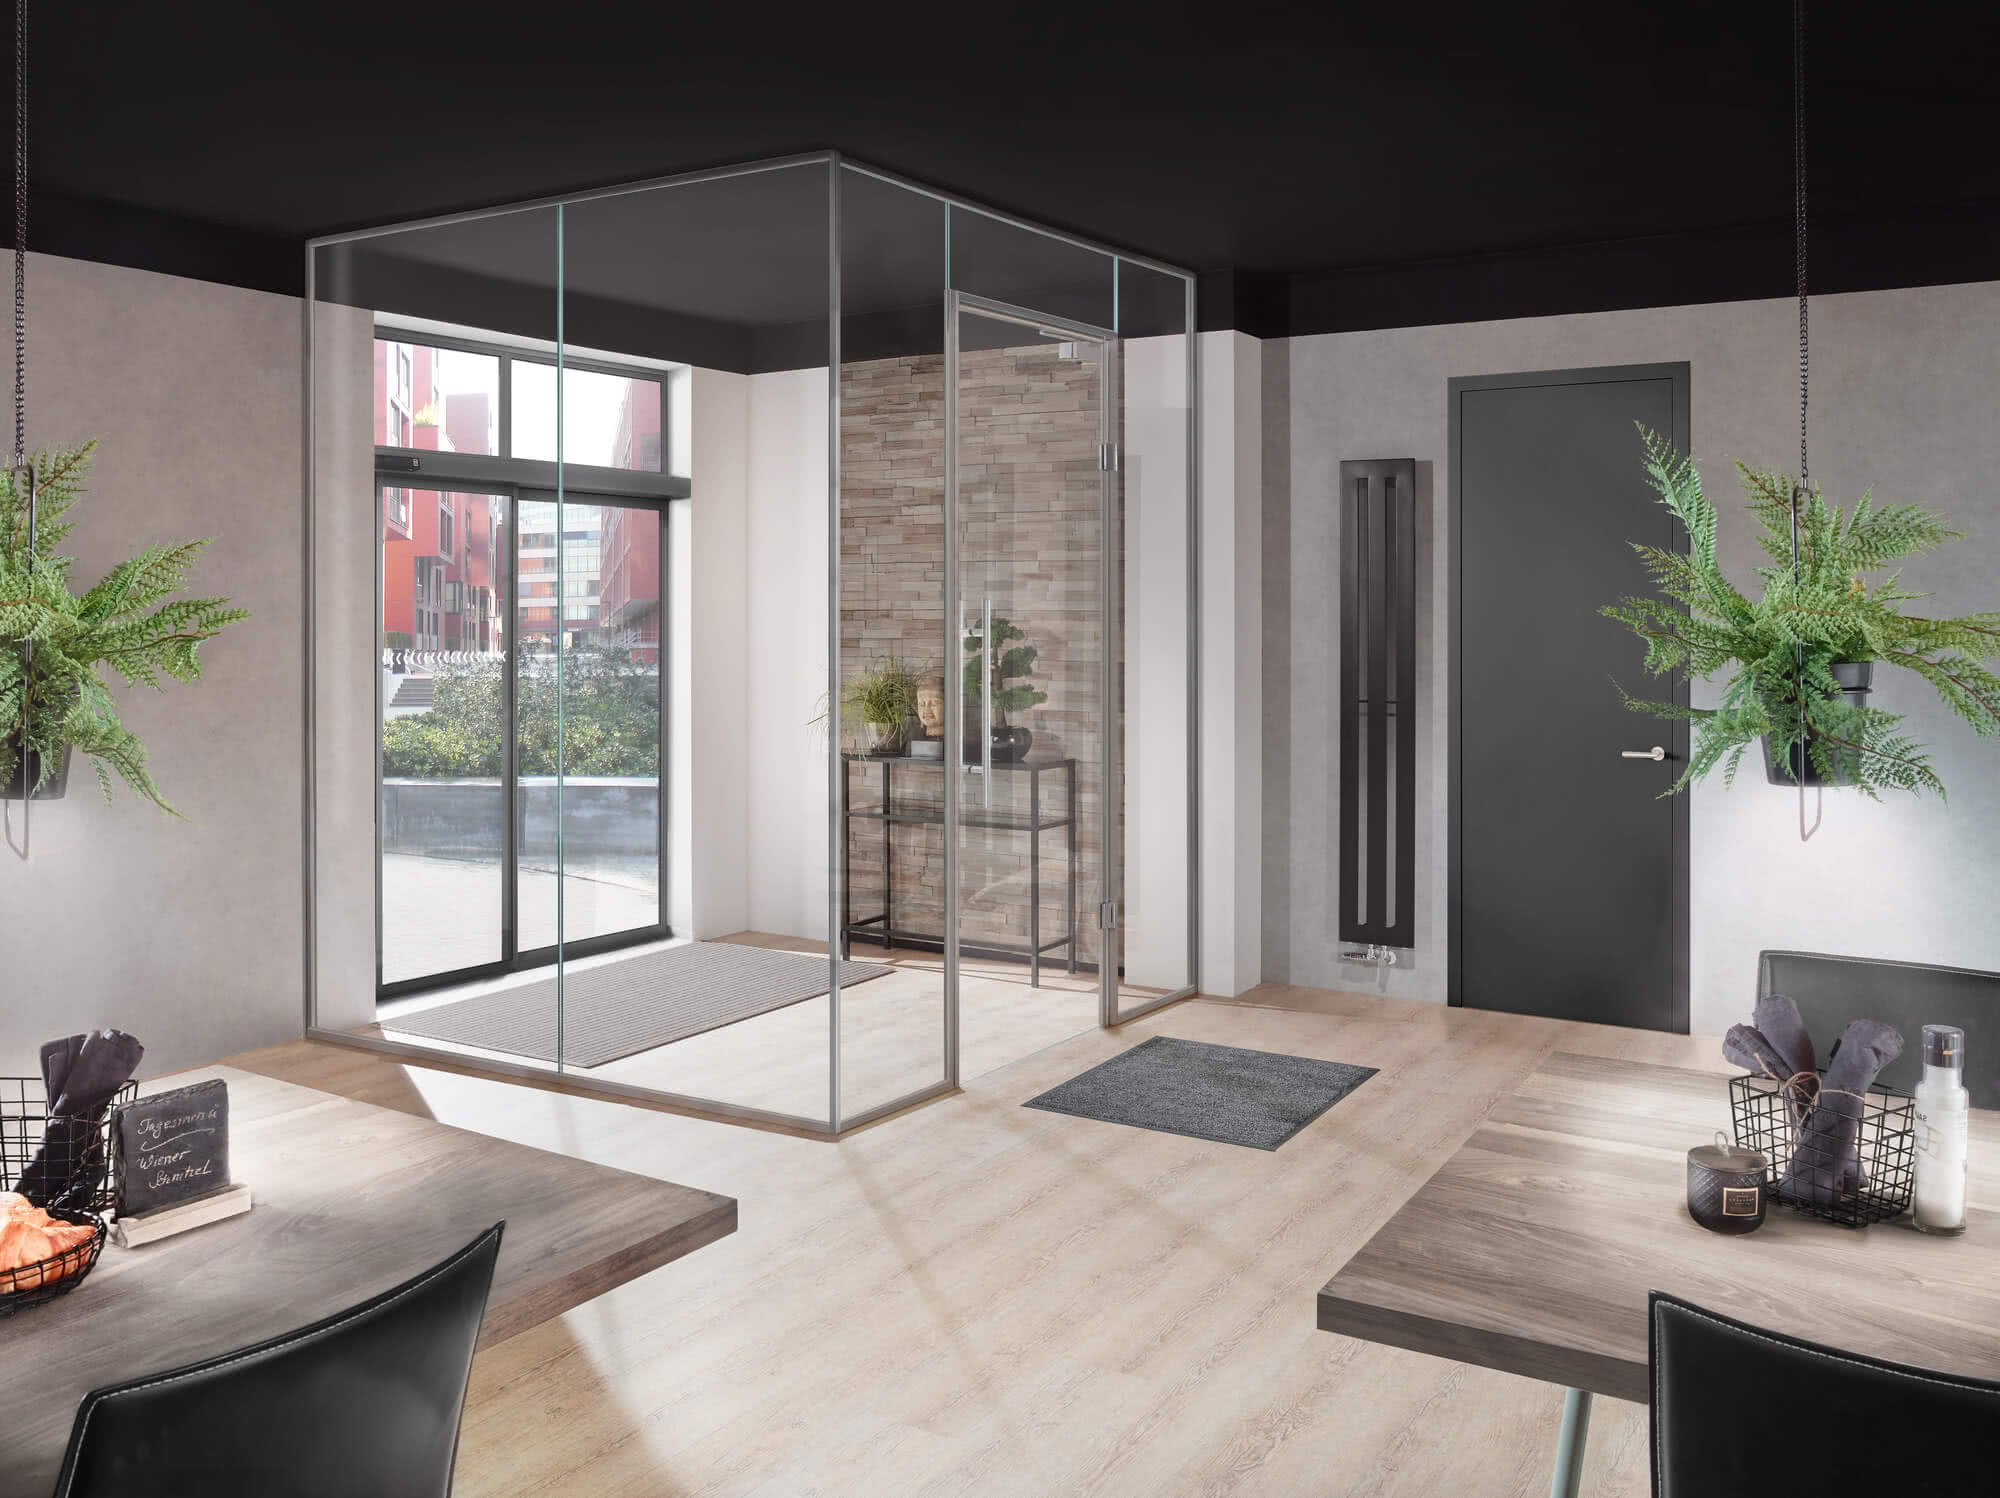 Vestibules: Suitable even for complicated spatial situations